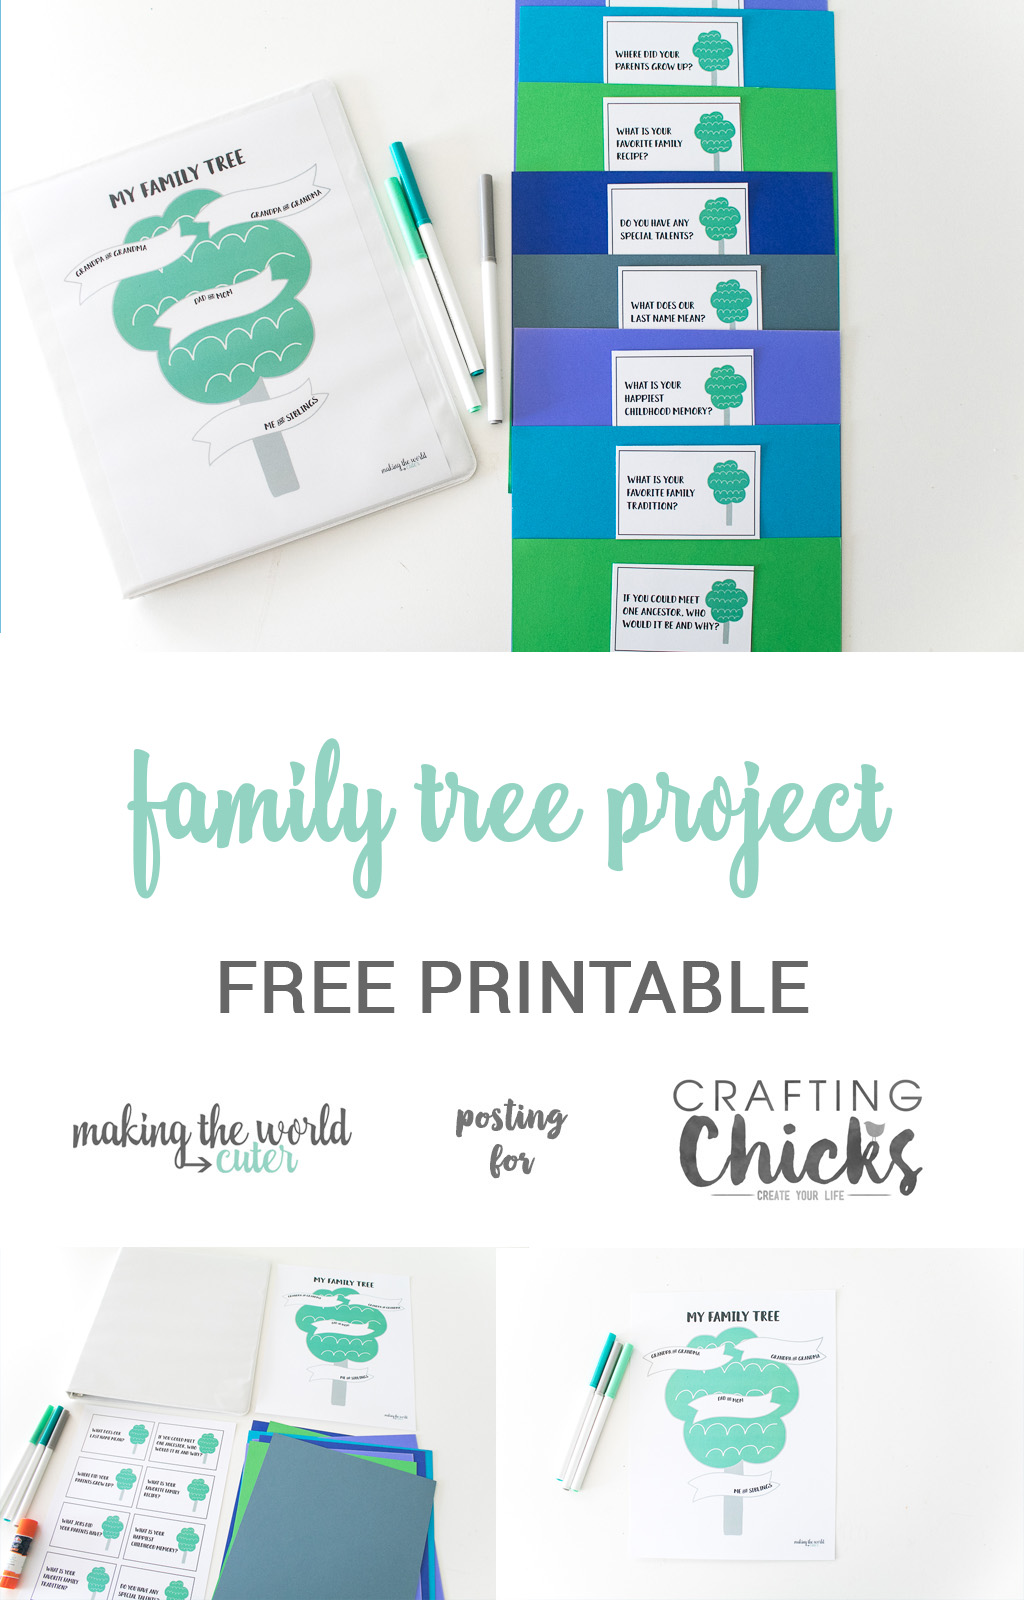 family tree project for kids with free printable the crafting chicks